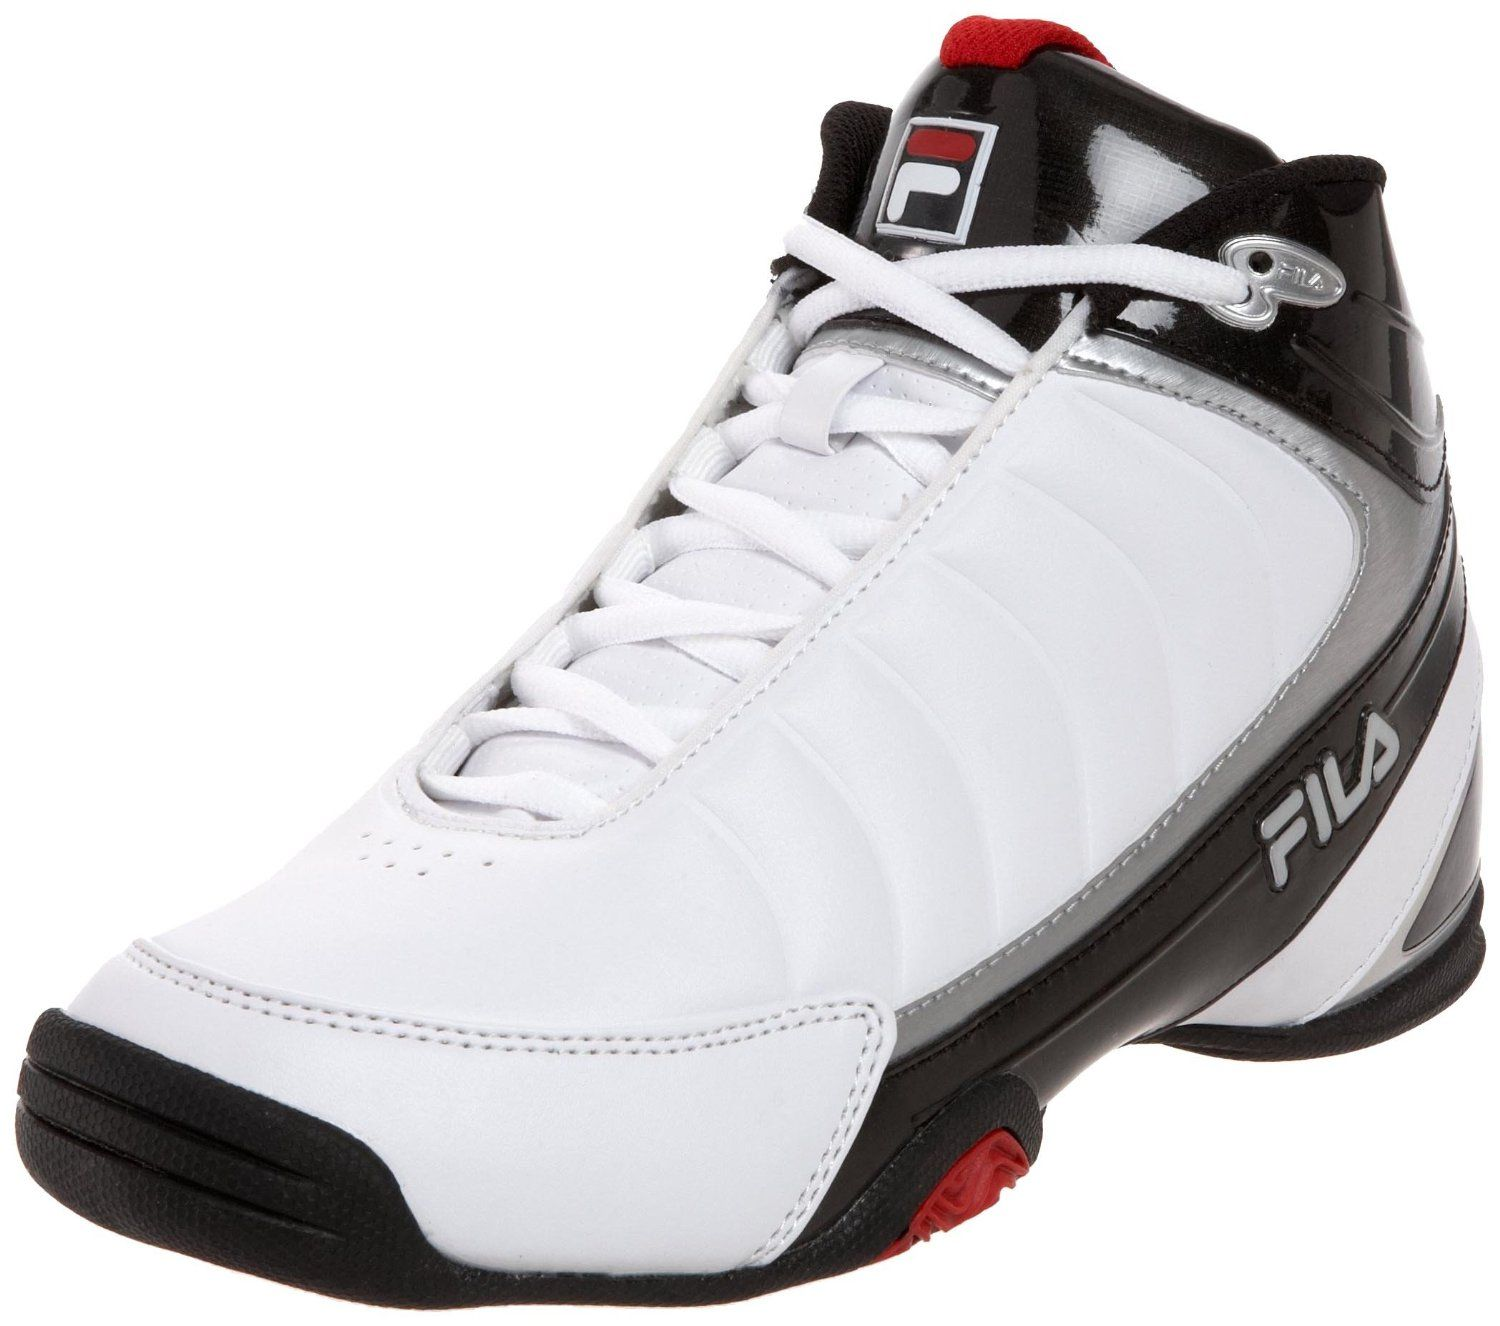 Fila Men's DLS Game White Sports Shoes - Basketball Shoes Websites